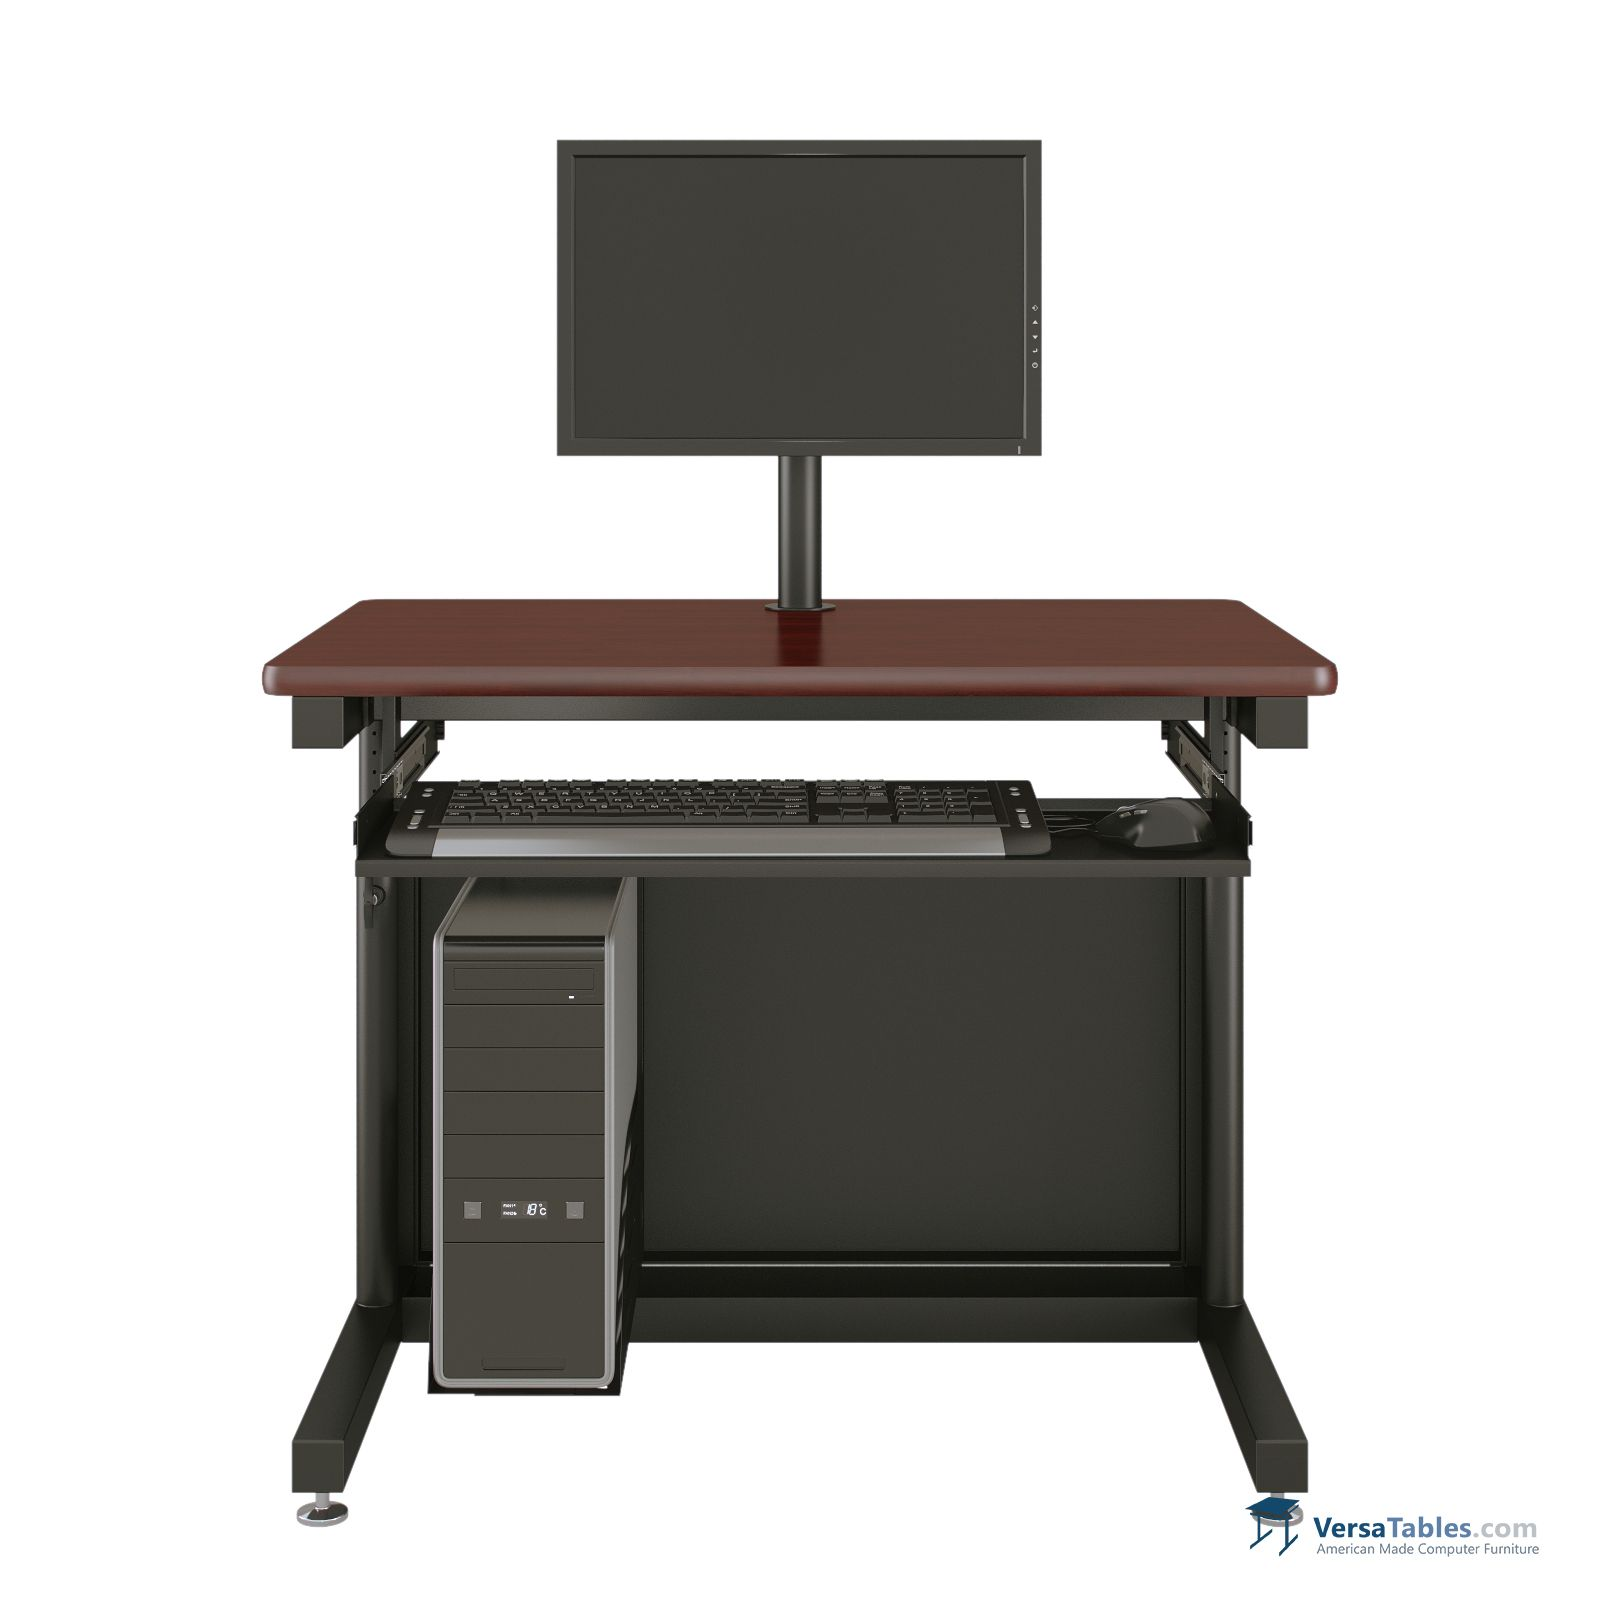 Pin by Versa Tables on Deluxe Height Adjustable puter